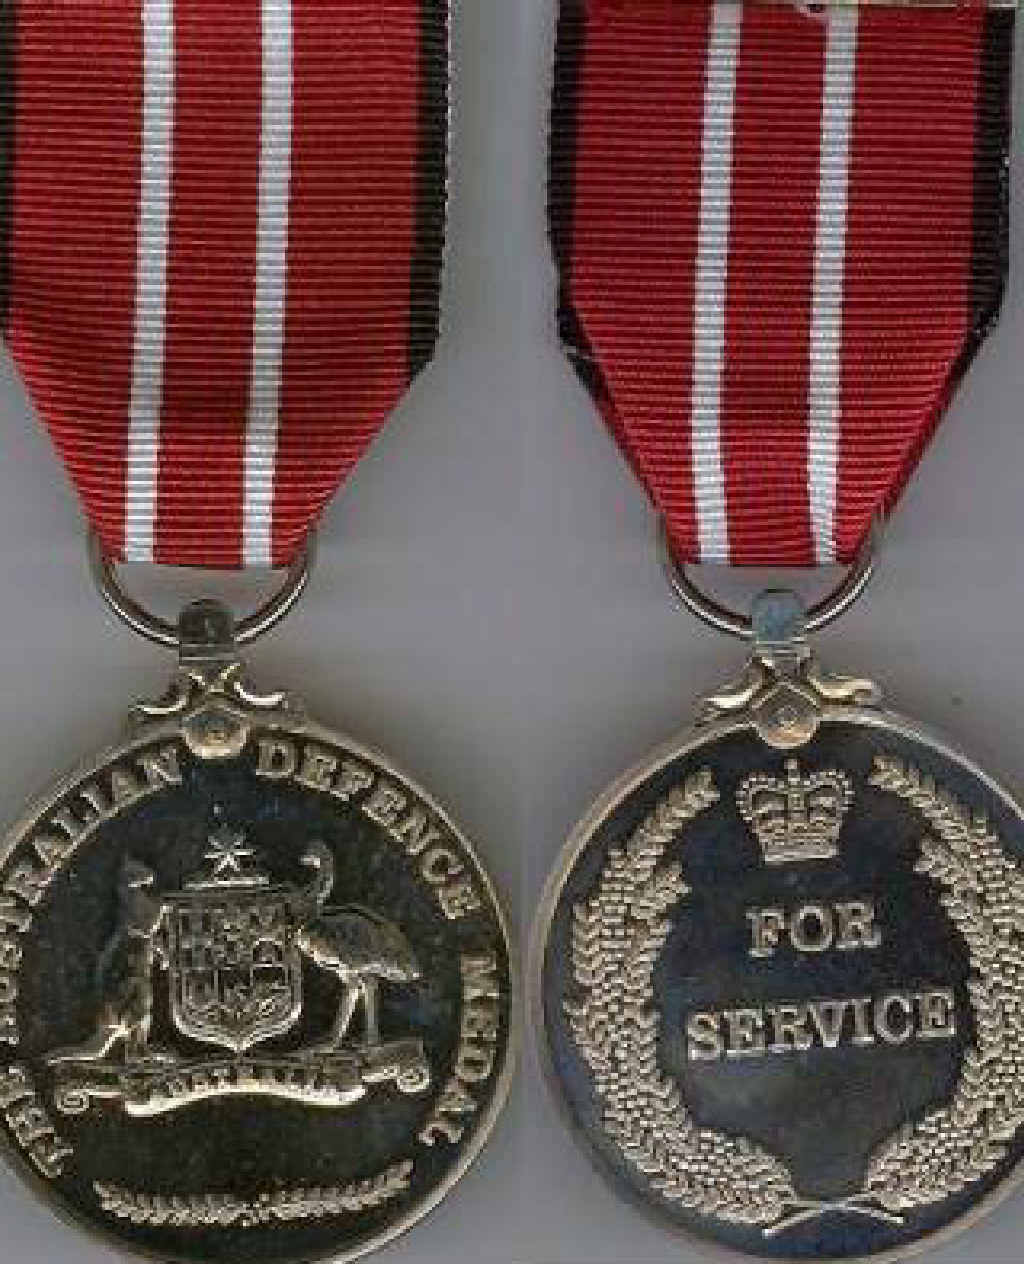 An Australian Defence Medal, similar to the one stolen from veteran John Grove.